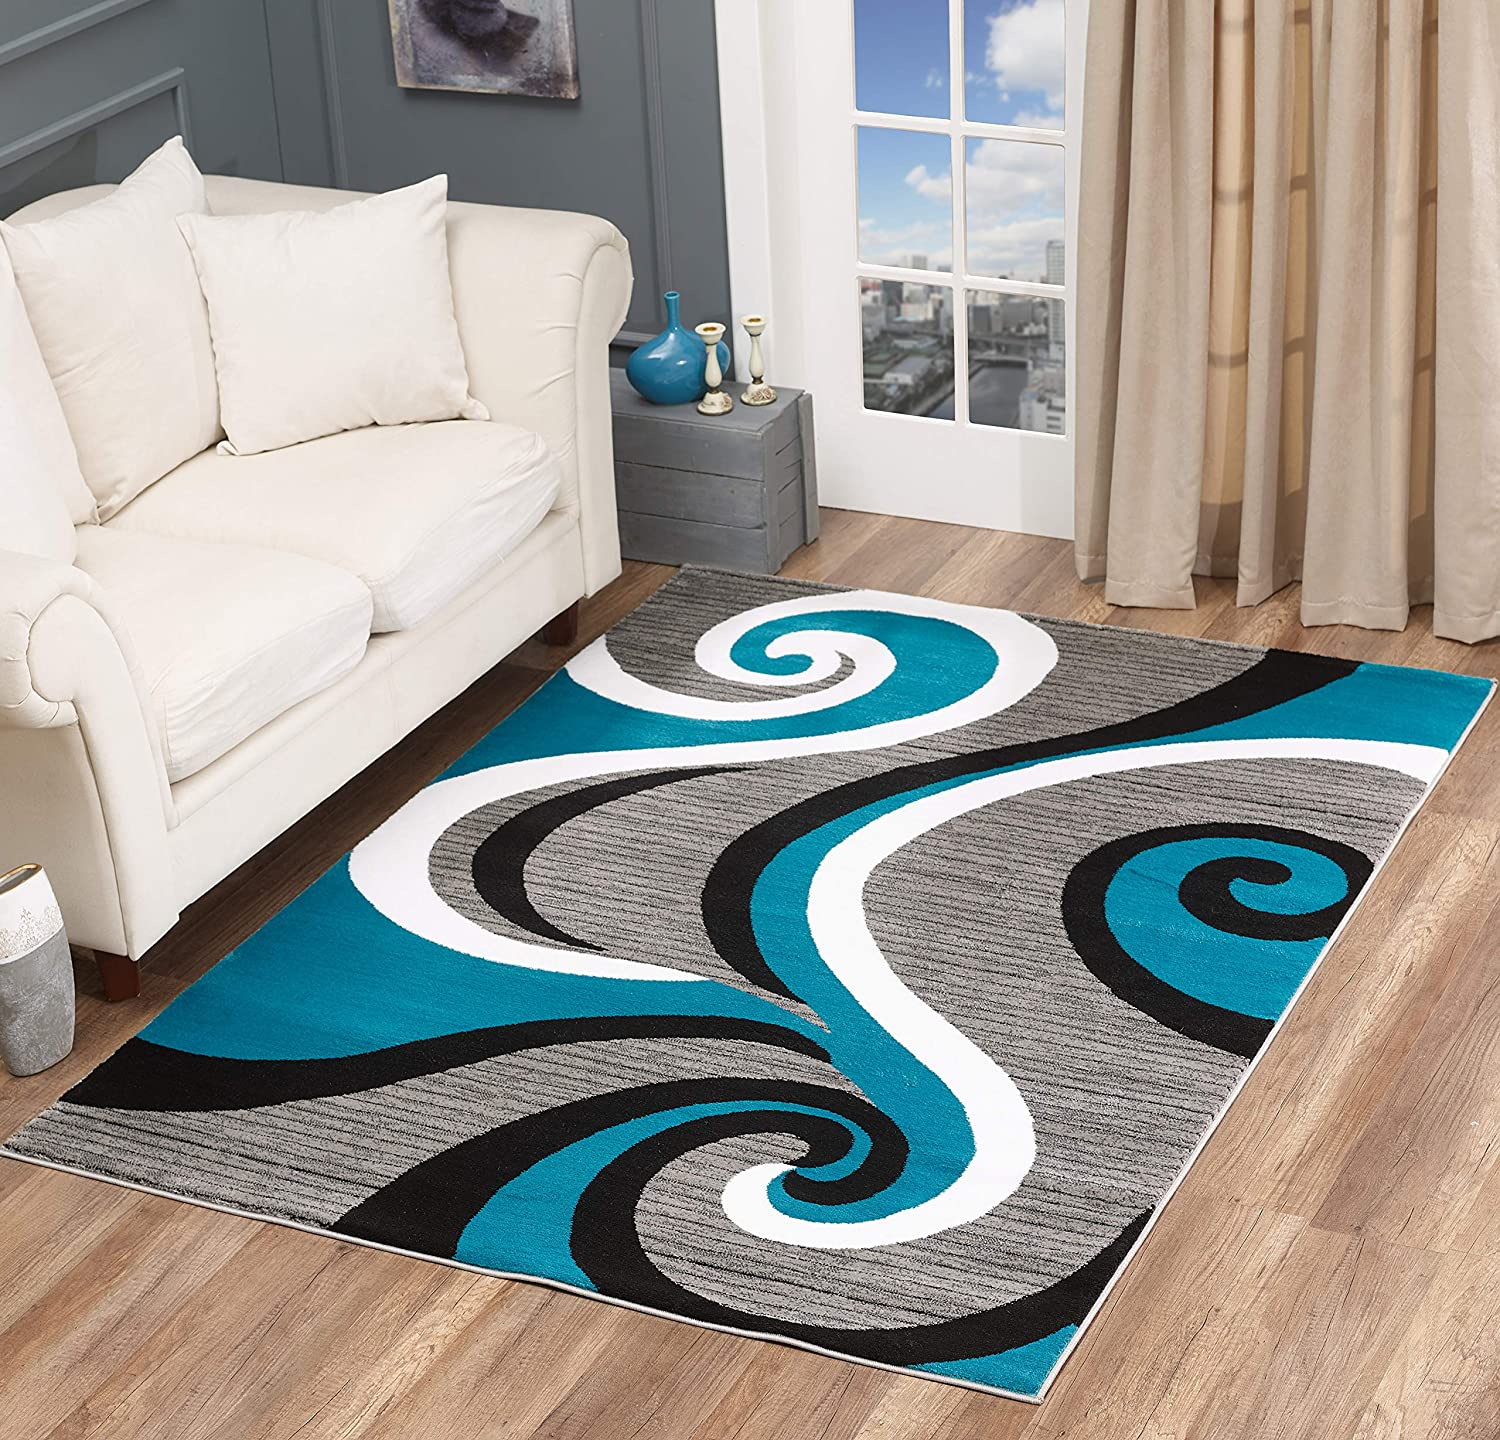 Golden Rugs Modern Area Rug Swirls Carpet Bedroom Living Room Contemporary Dining Accent Sevilla Collection 4817 (4x6, Turquoise)